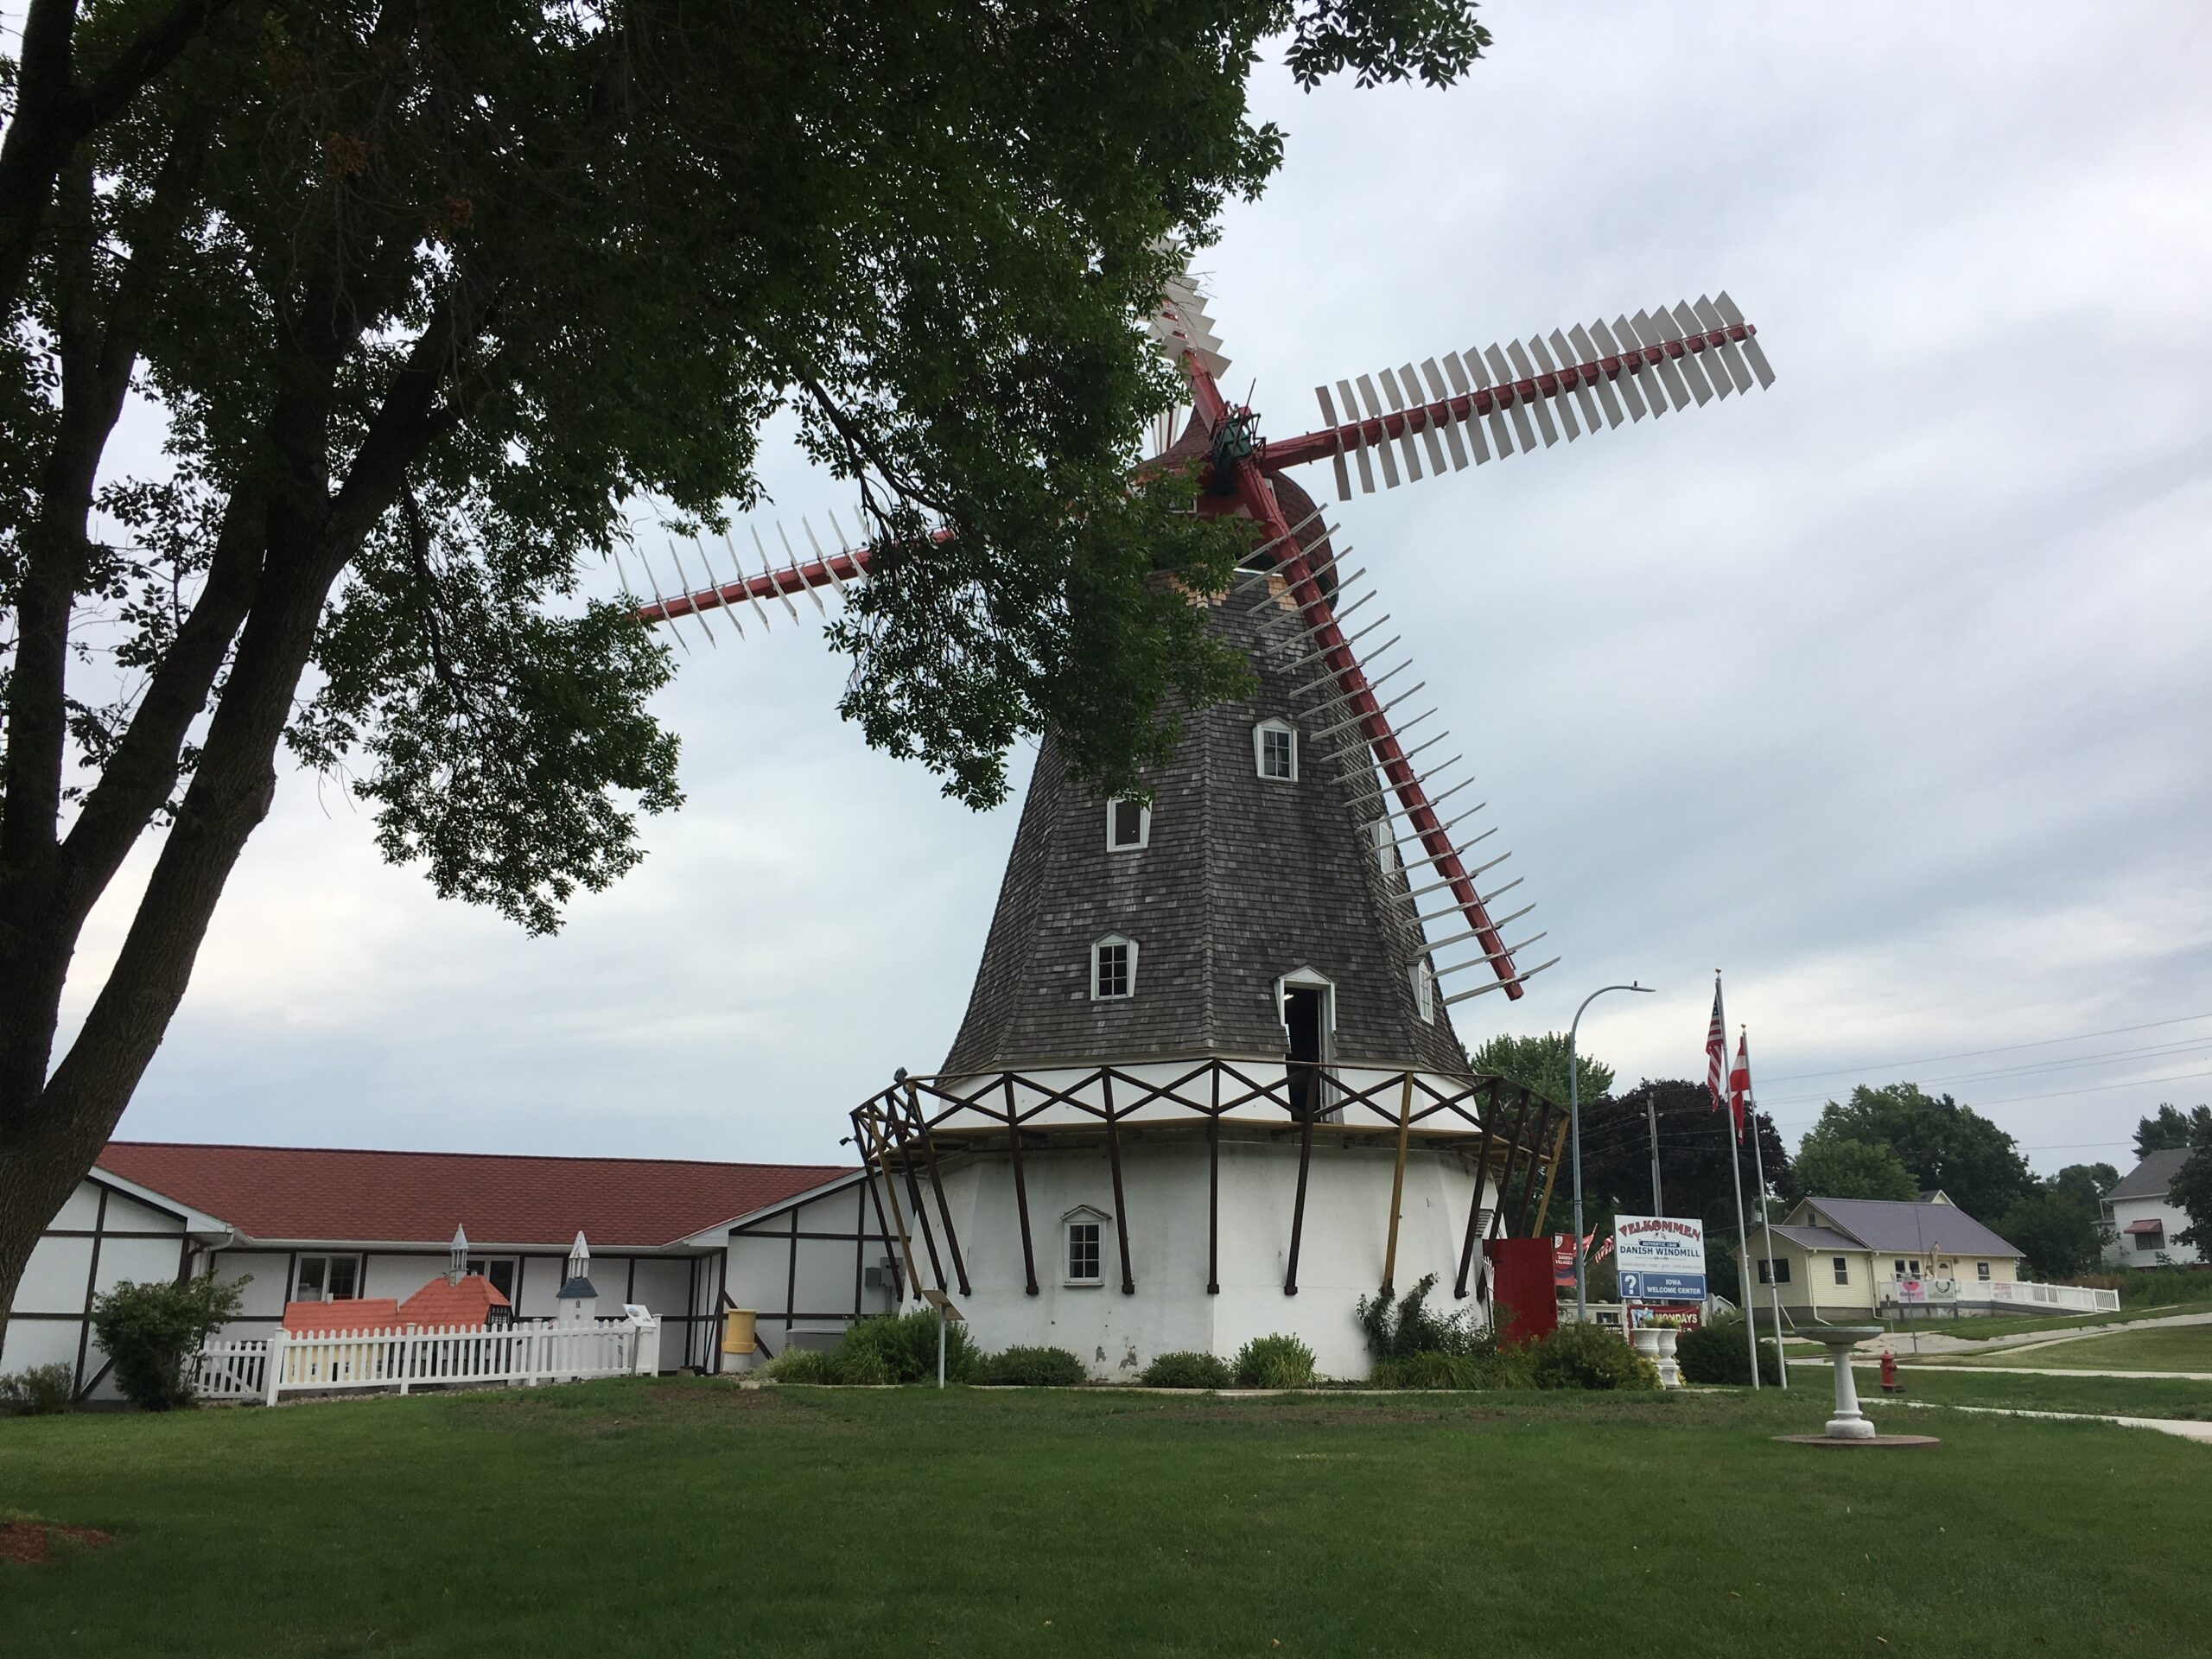 large windmill with trees and green grass